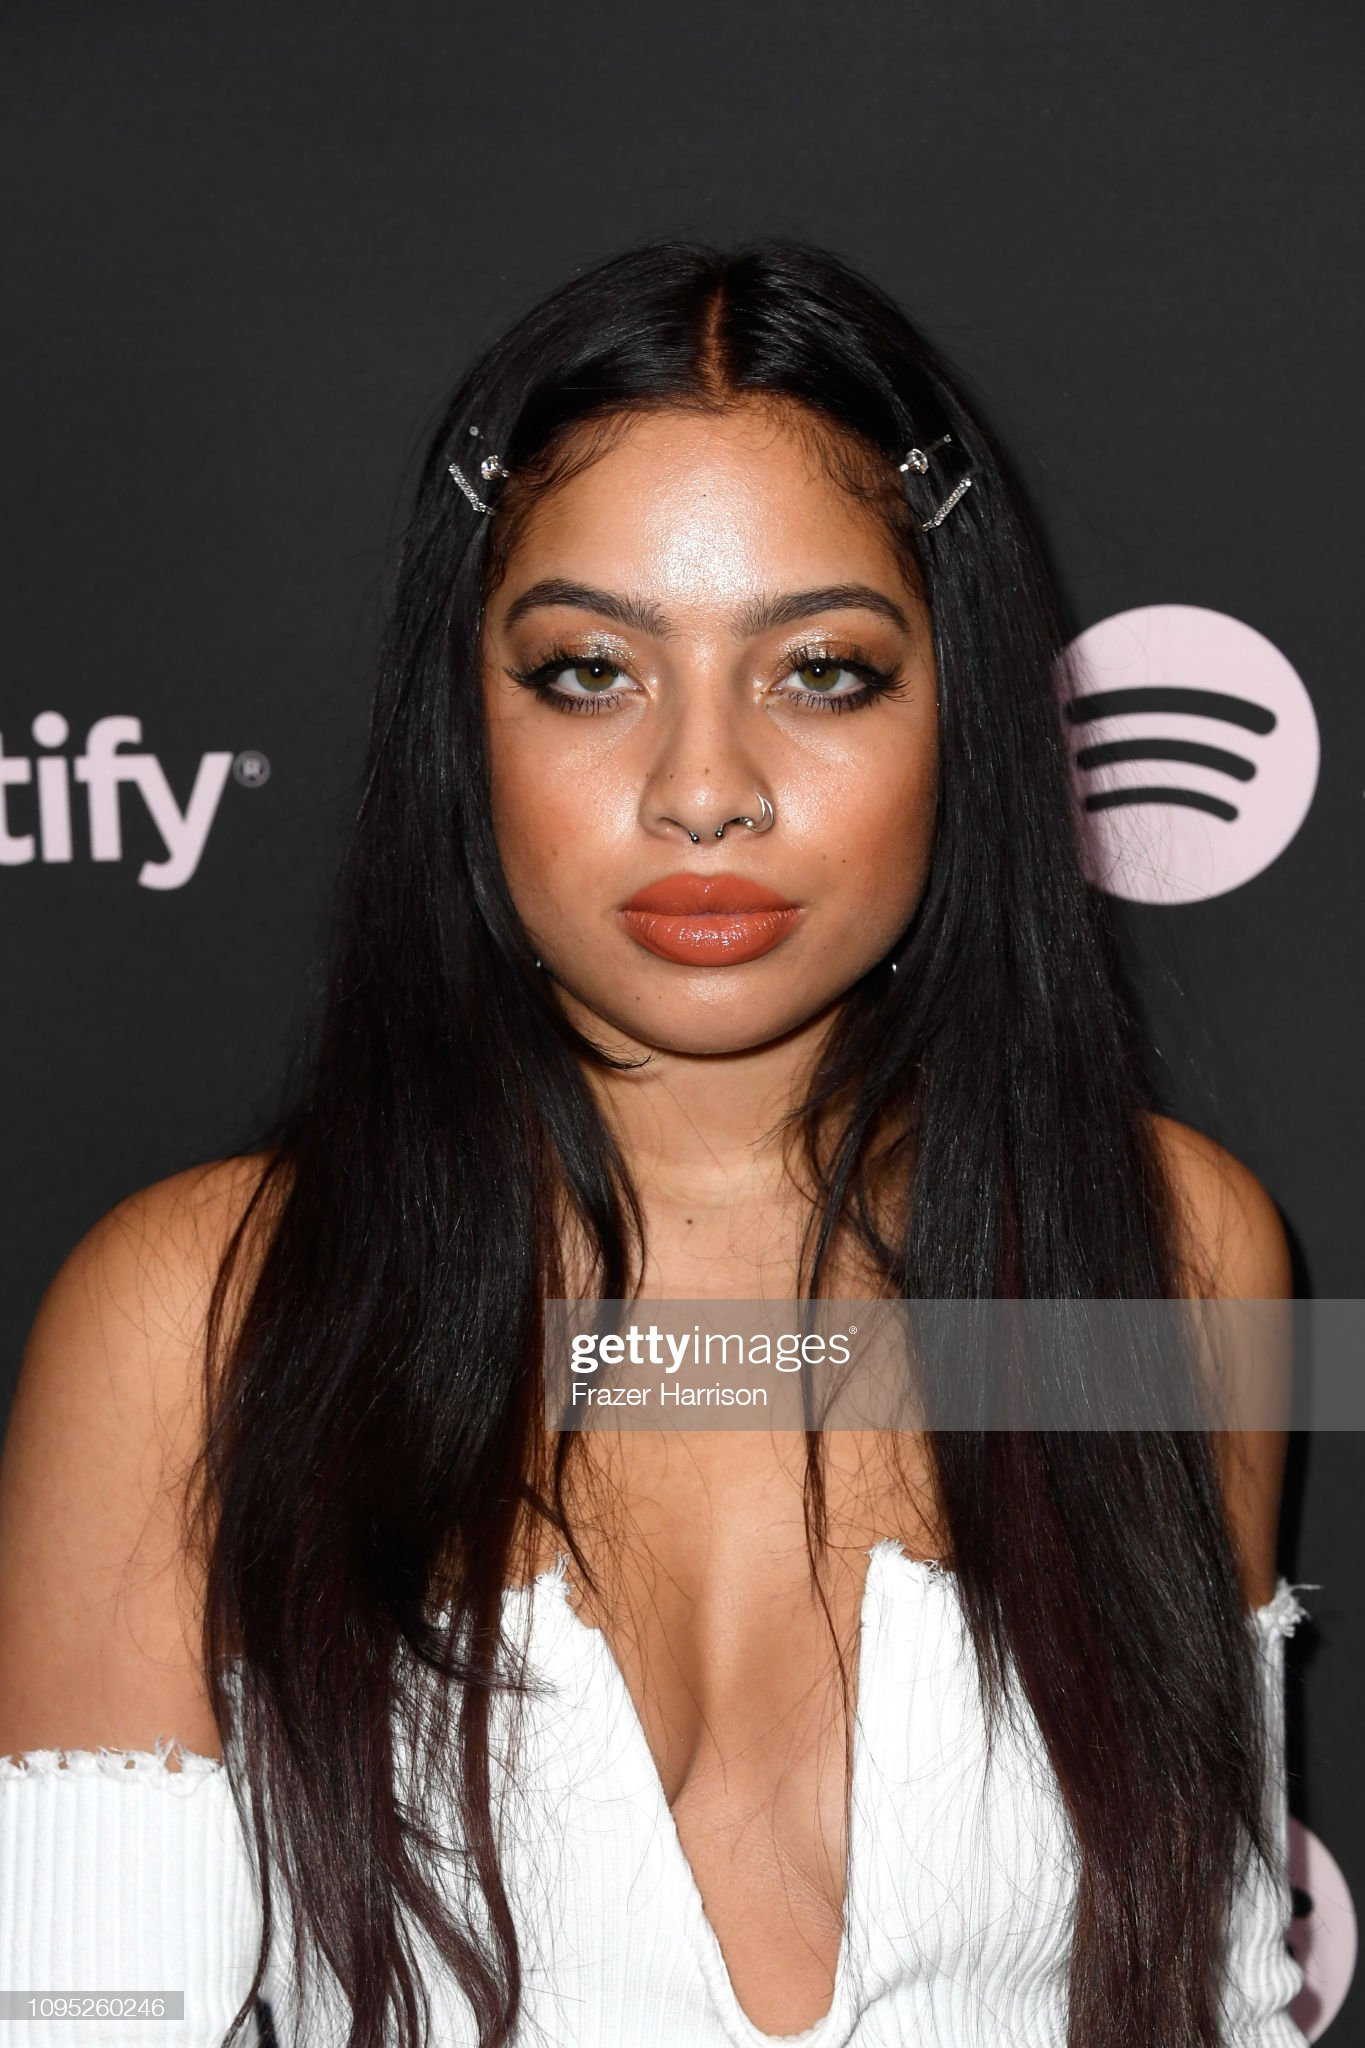 Hazel eyes - Personas famosas con los ojos de color AVELLANA Kiana-led-attends-spotify-best-new-artist-2019-event-at-hammer-museum-picture-id1095260246?s=2048x2048